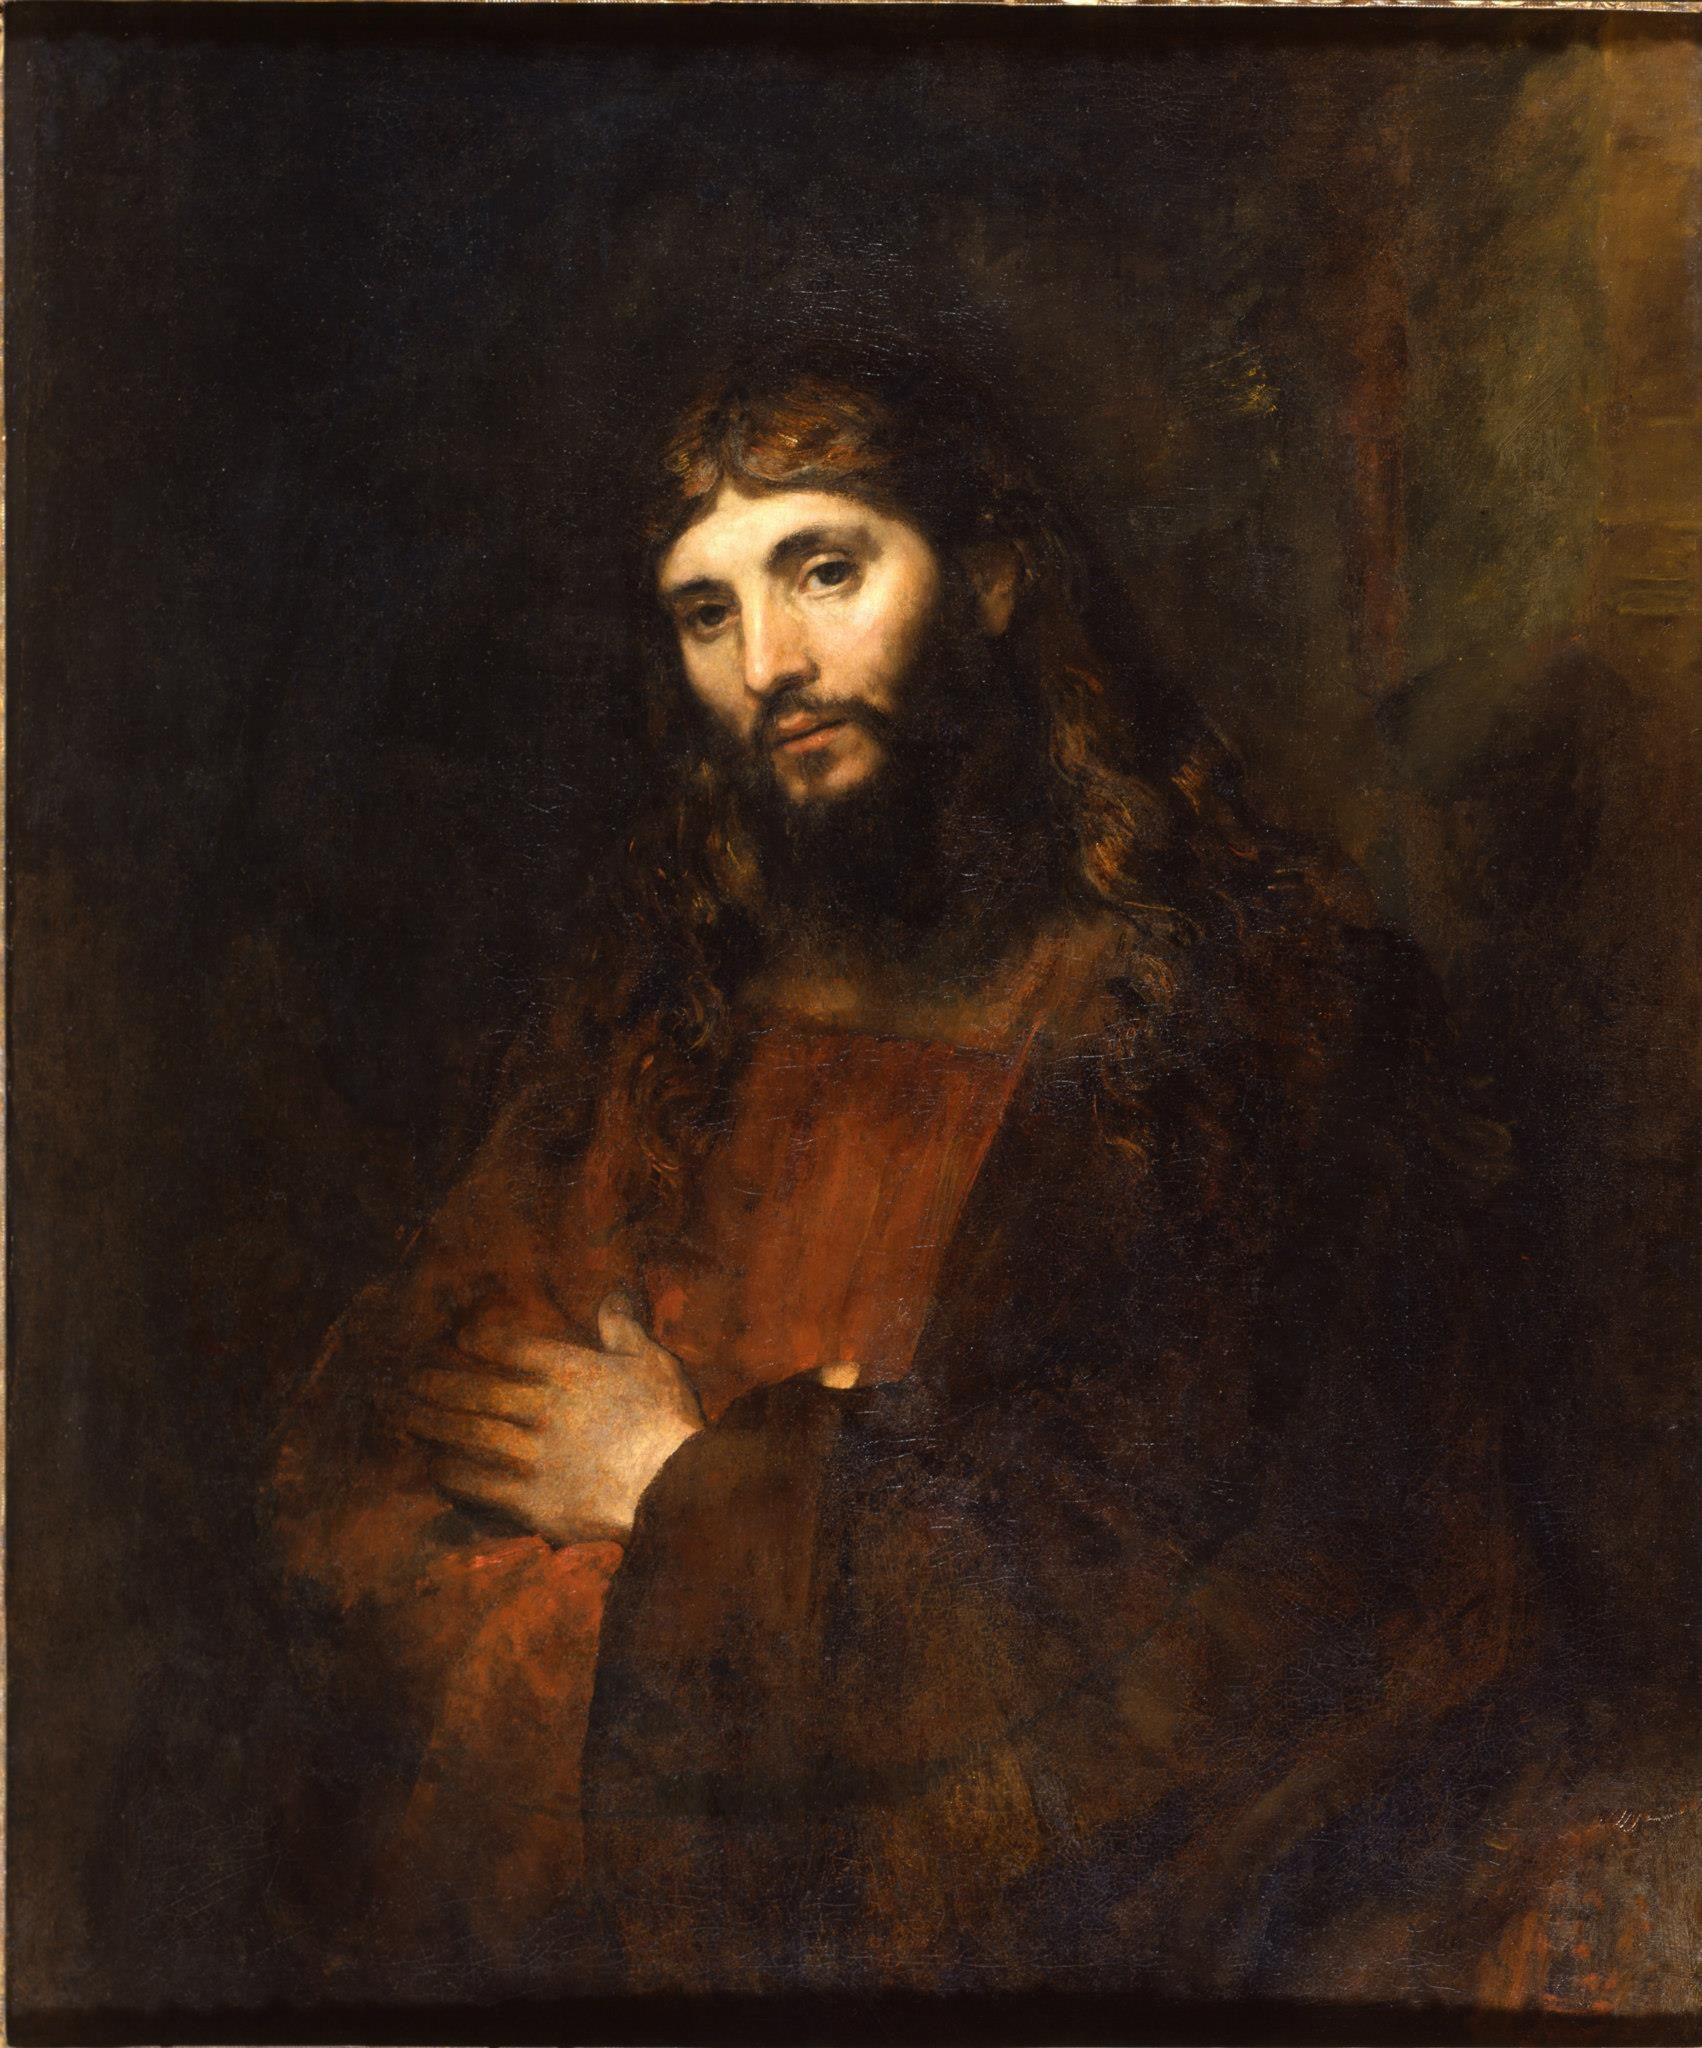 Christ with Arms Folded, Rembrandt van Rijin, 1657-61, oil on canvas, The Hyde Collection